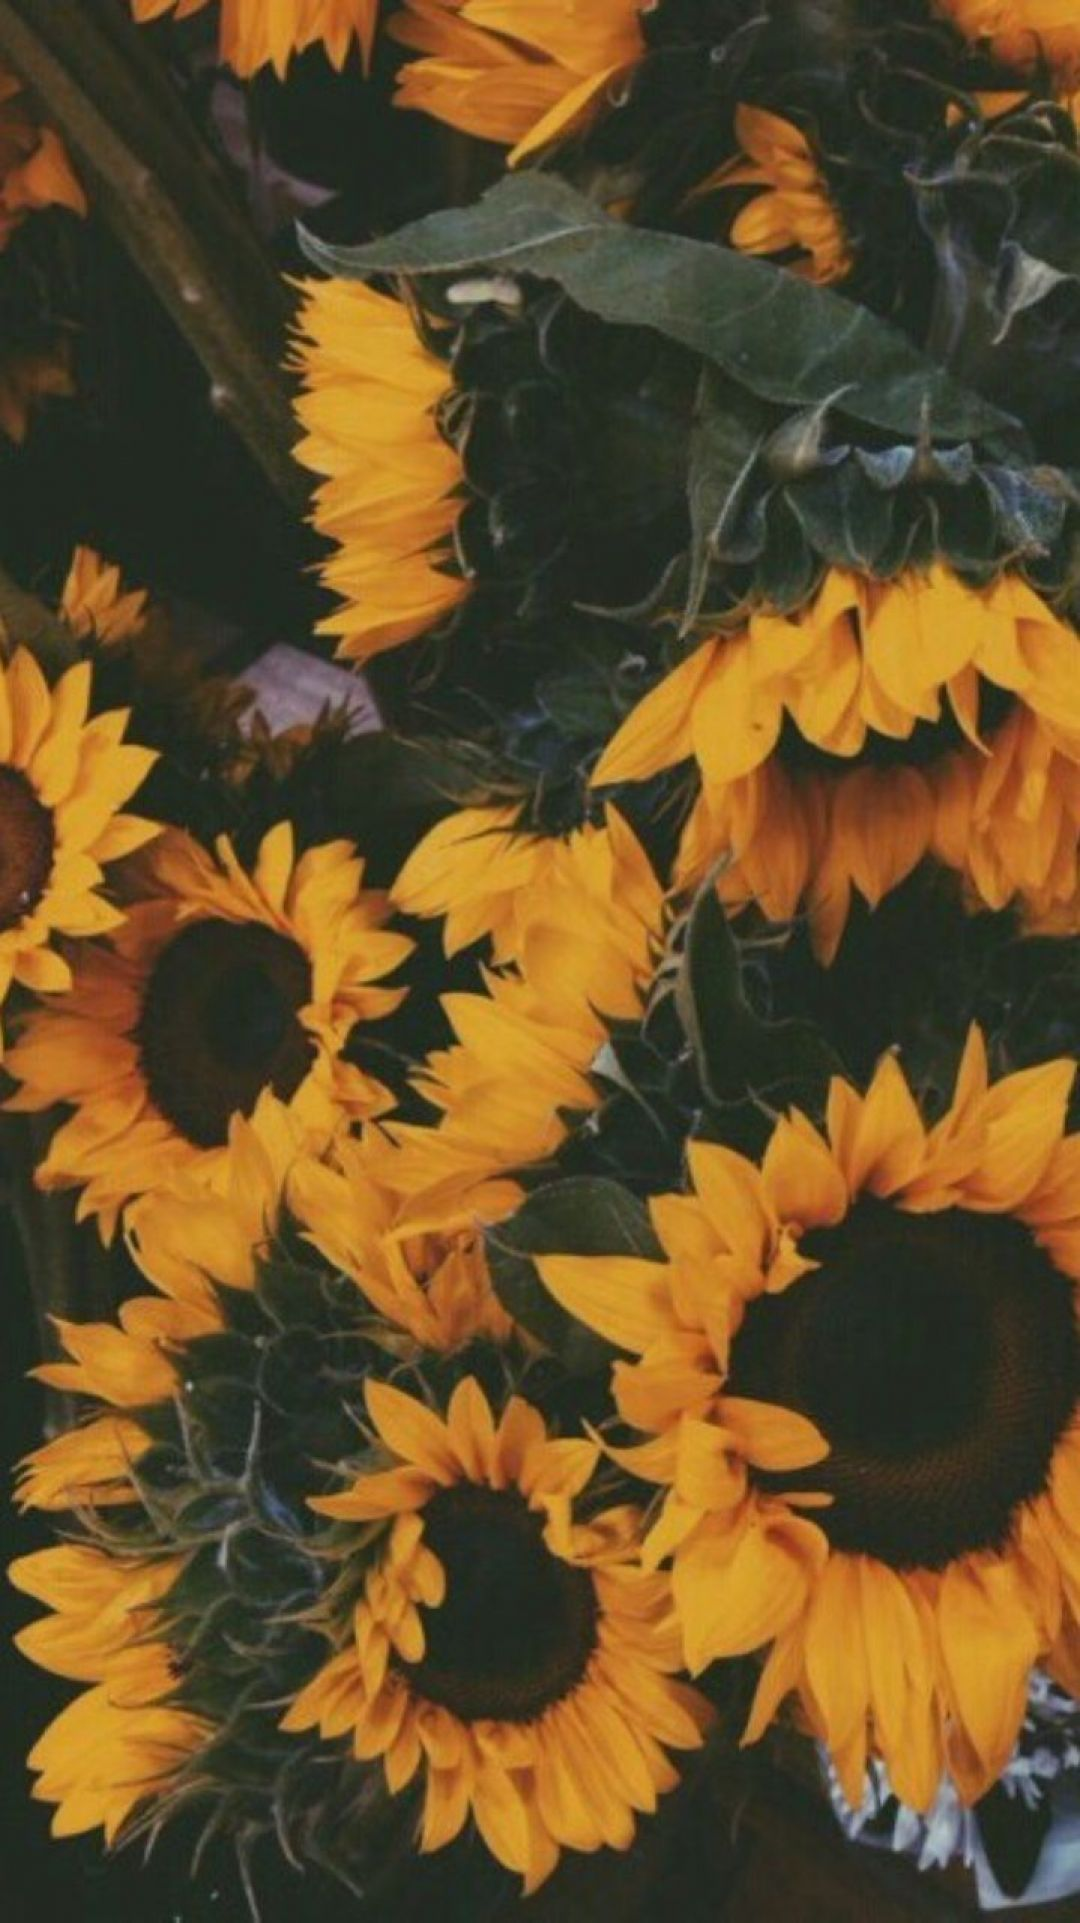 ✅[50+] Yellow Aesthetic Sunflowers HD Wallpapers